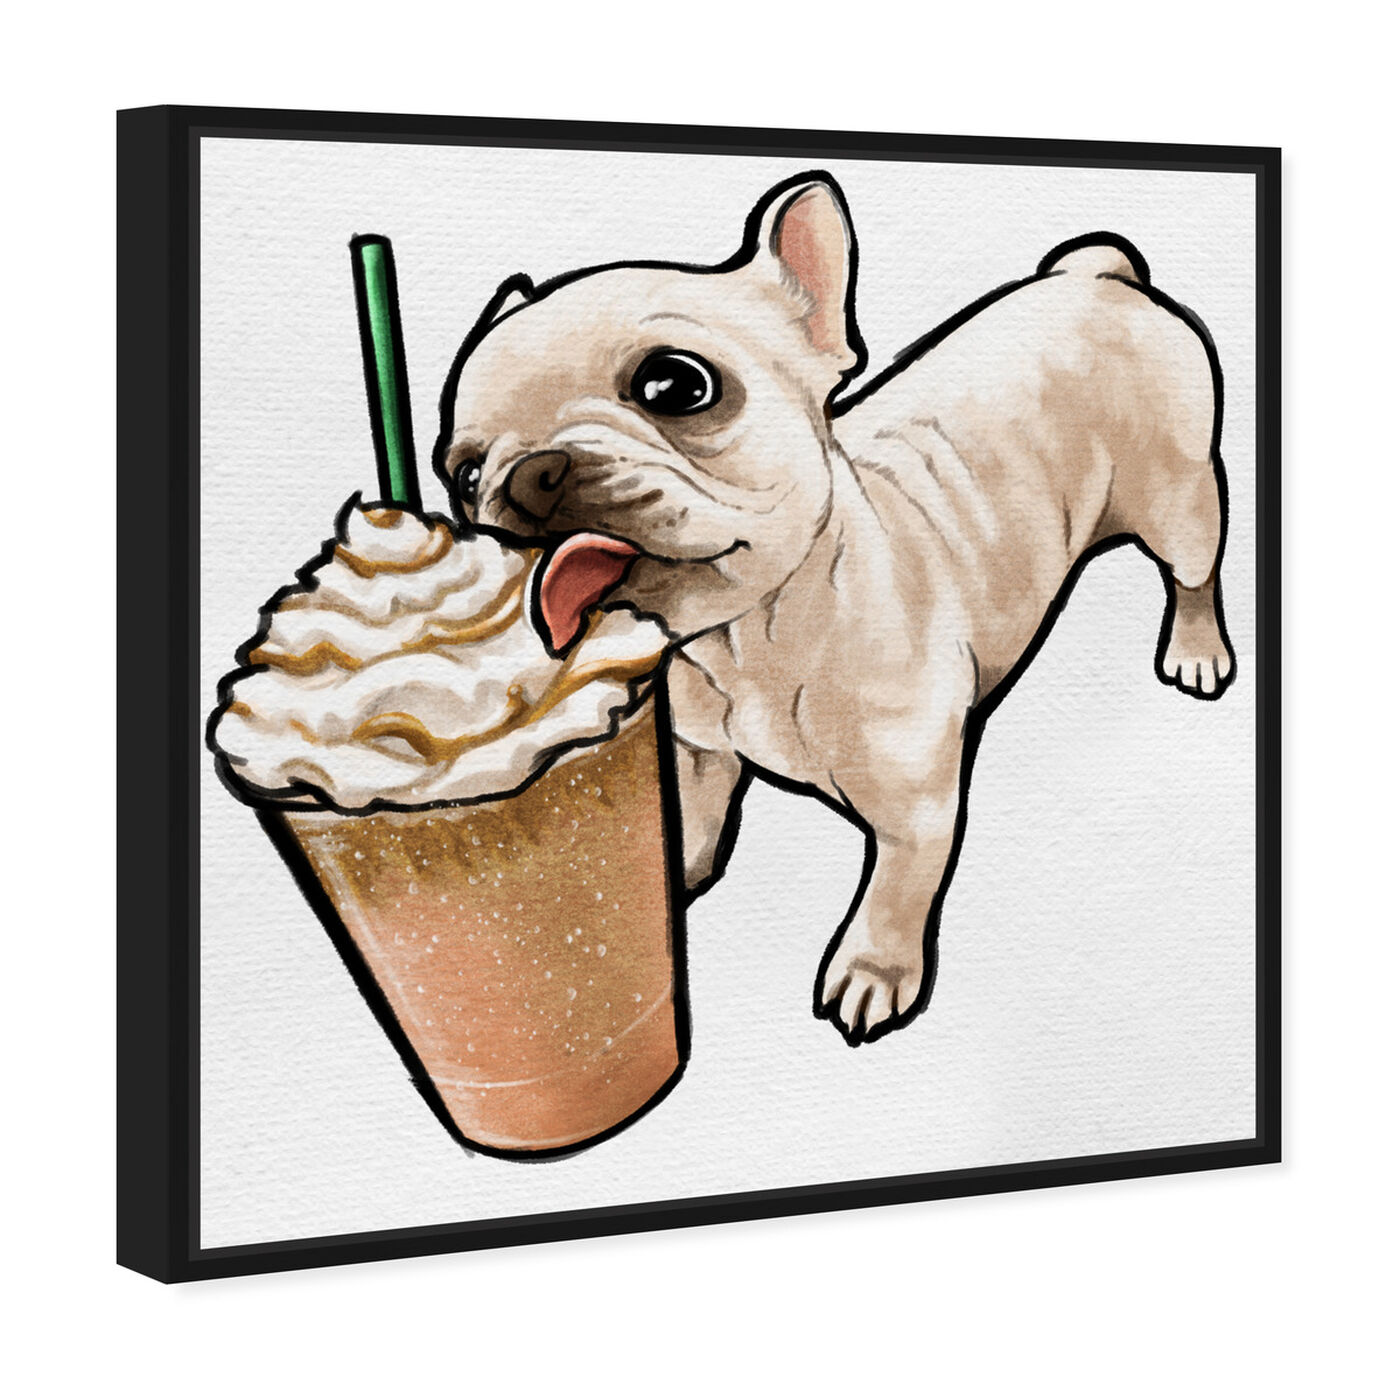 Angled view of Frenchie and Frappe featuring animals and dogs and puppies art.